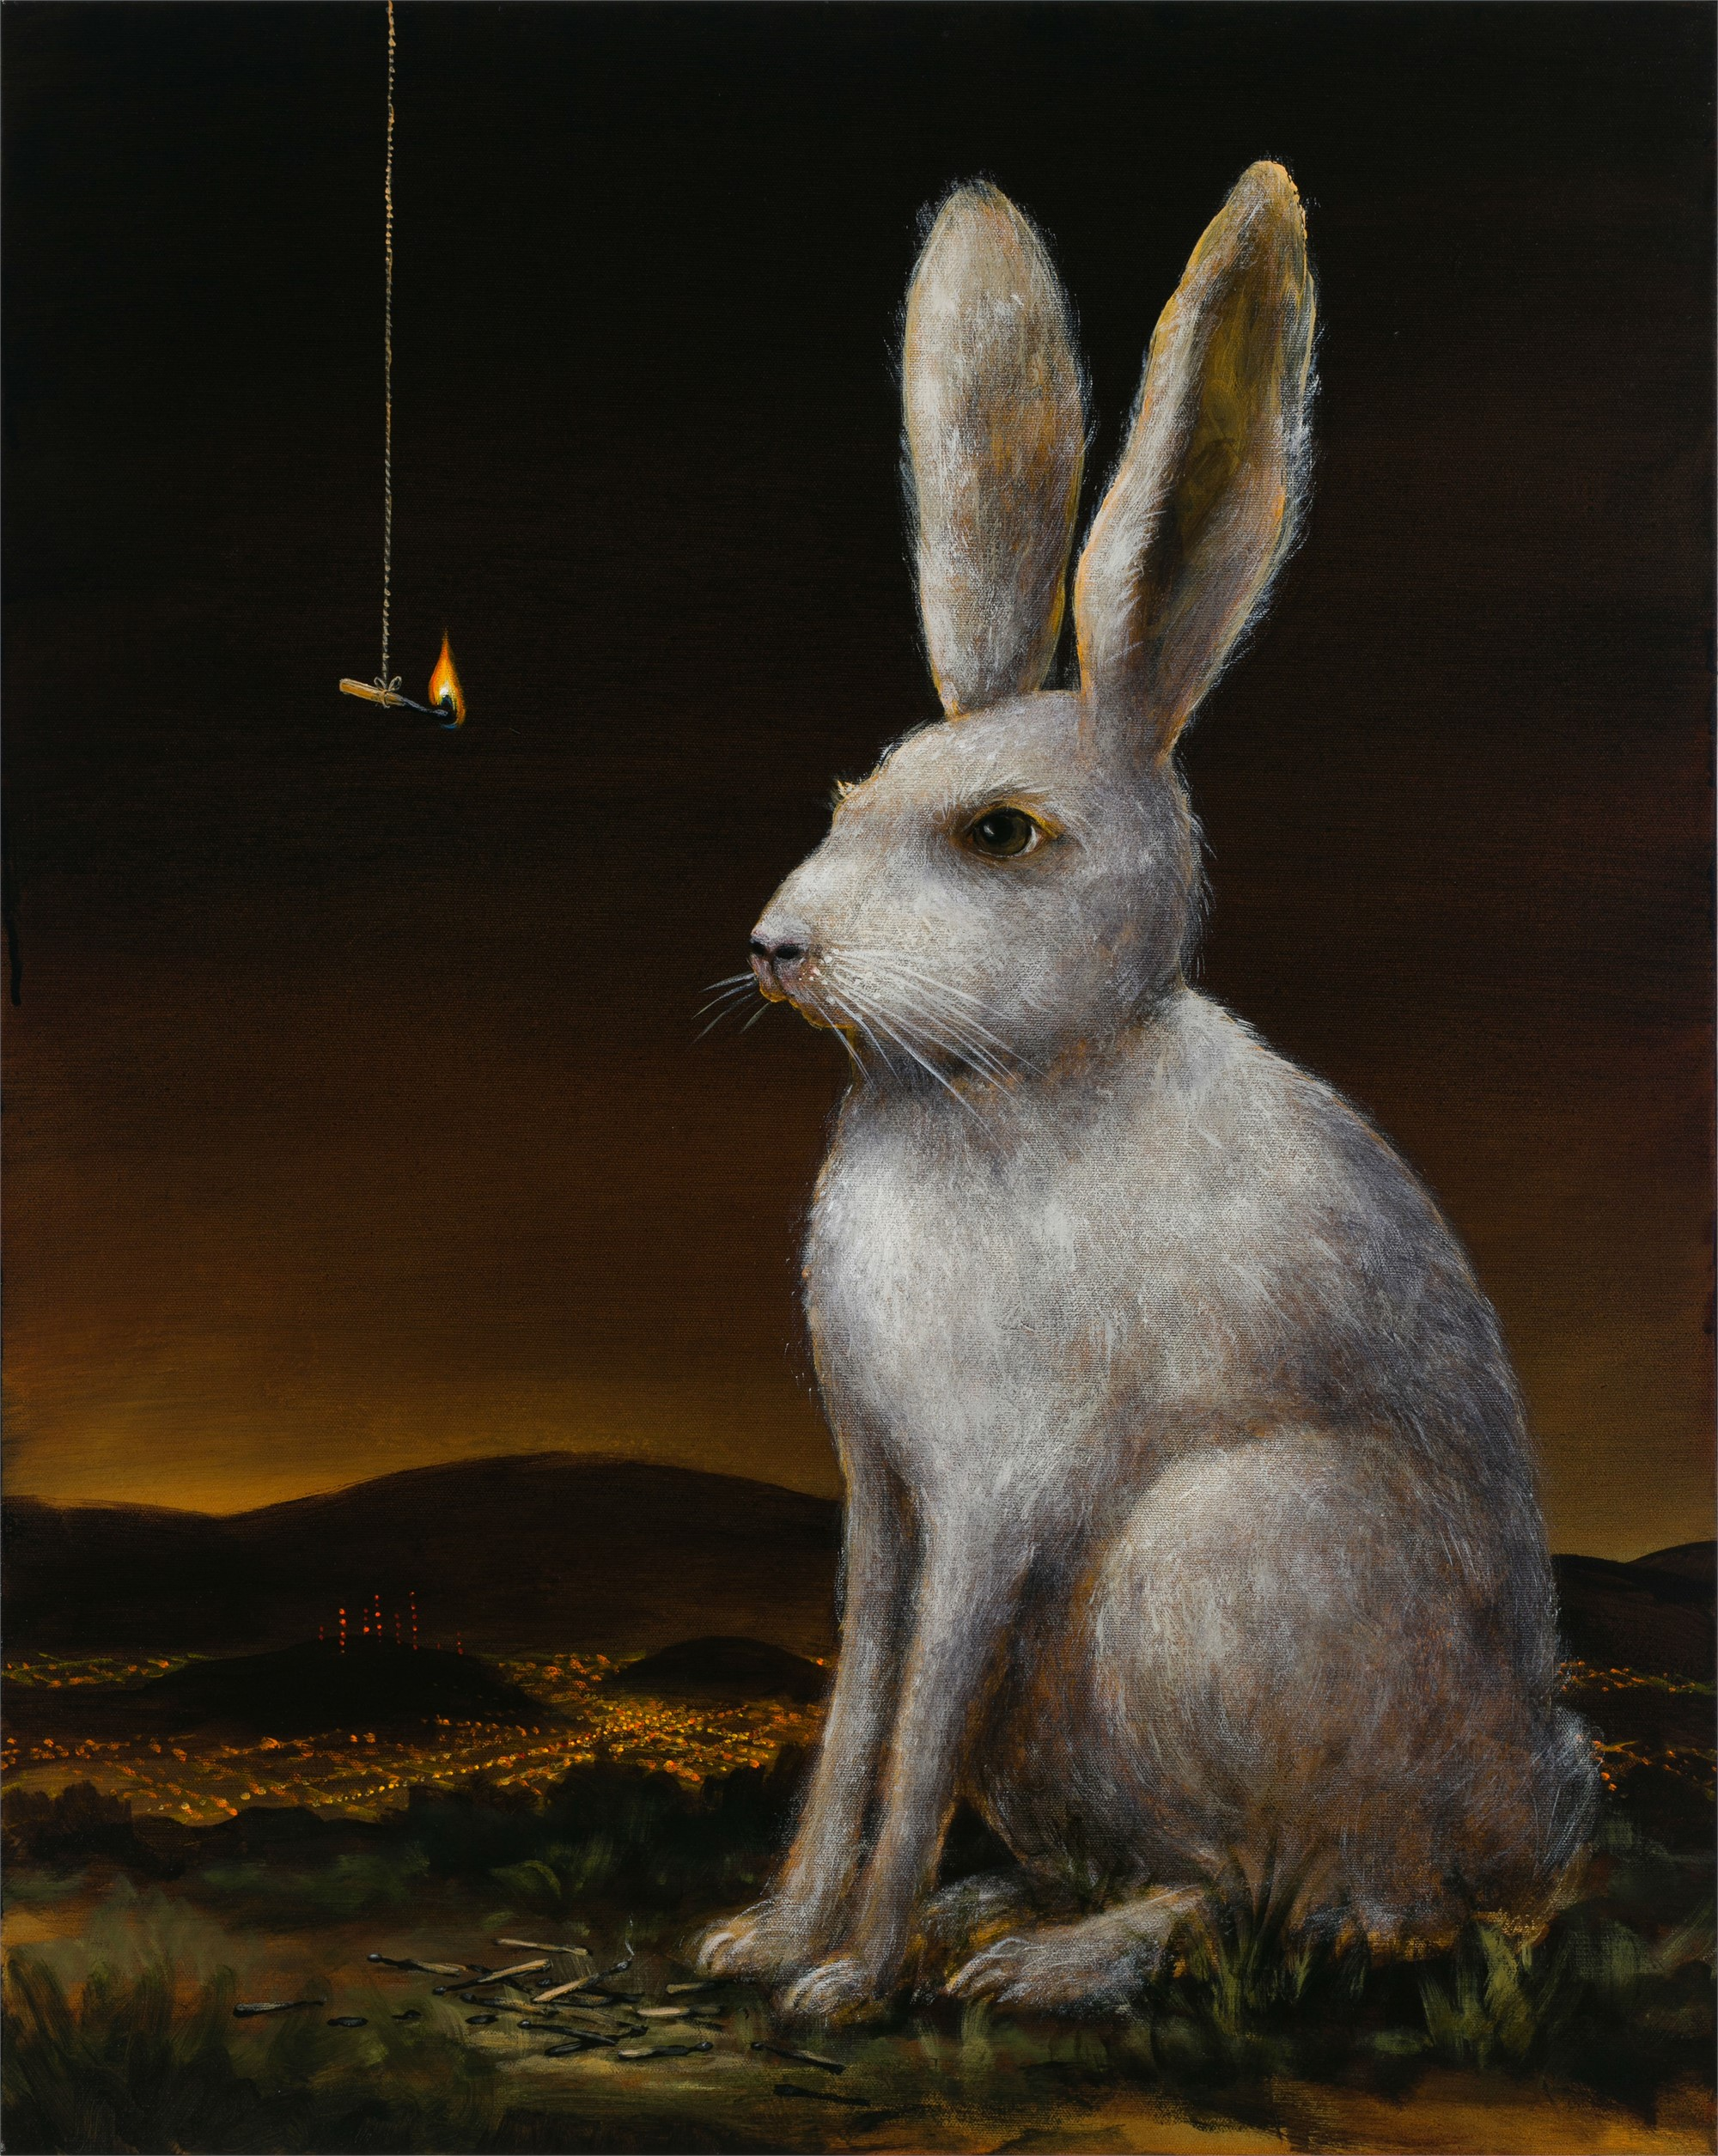 Ancient Guardian by Kevin Sloan